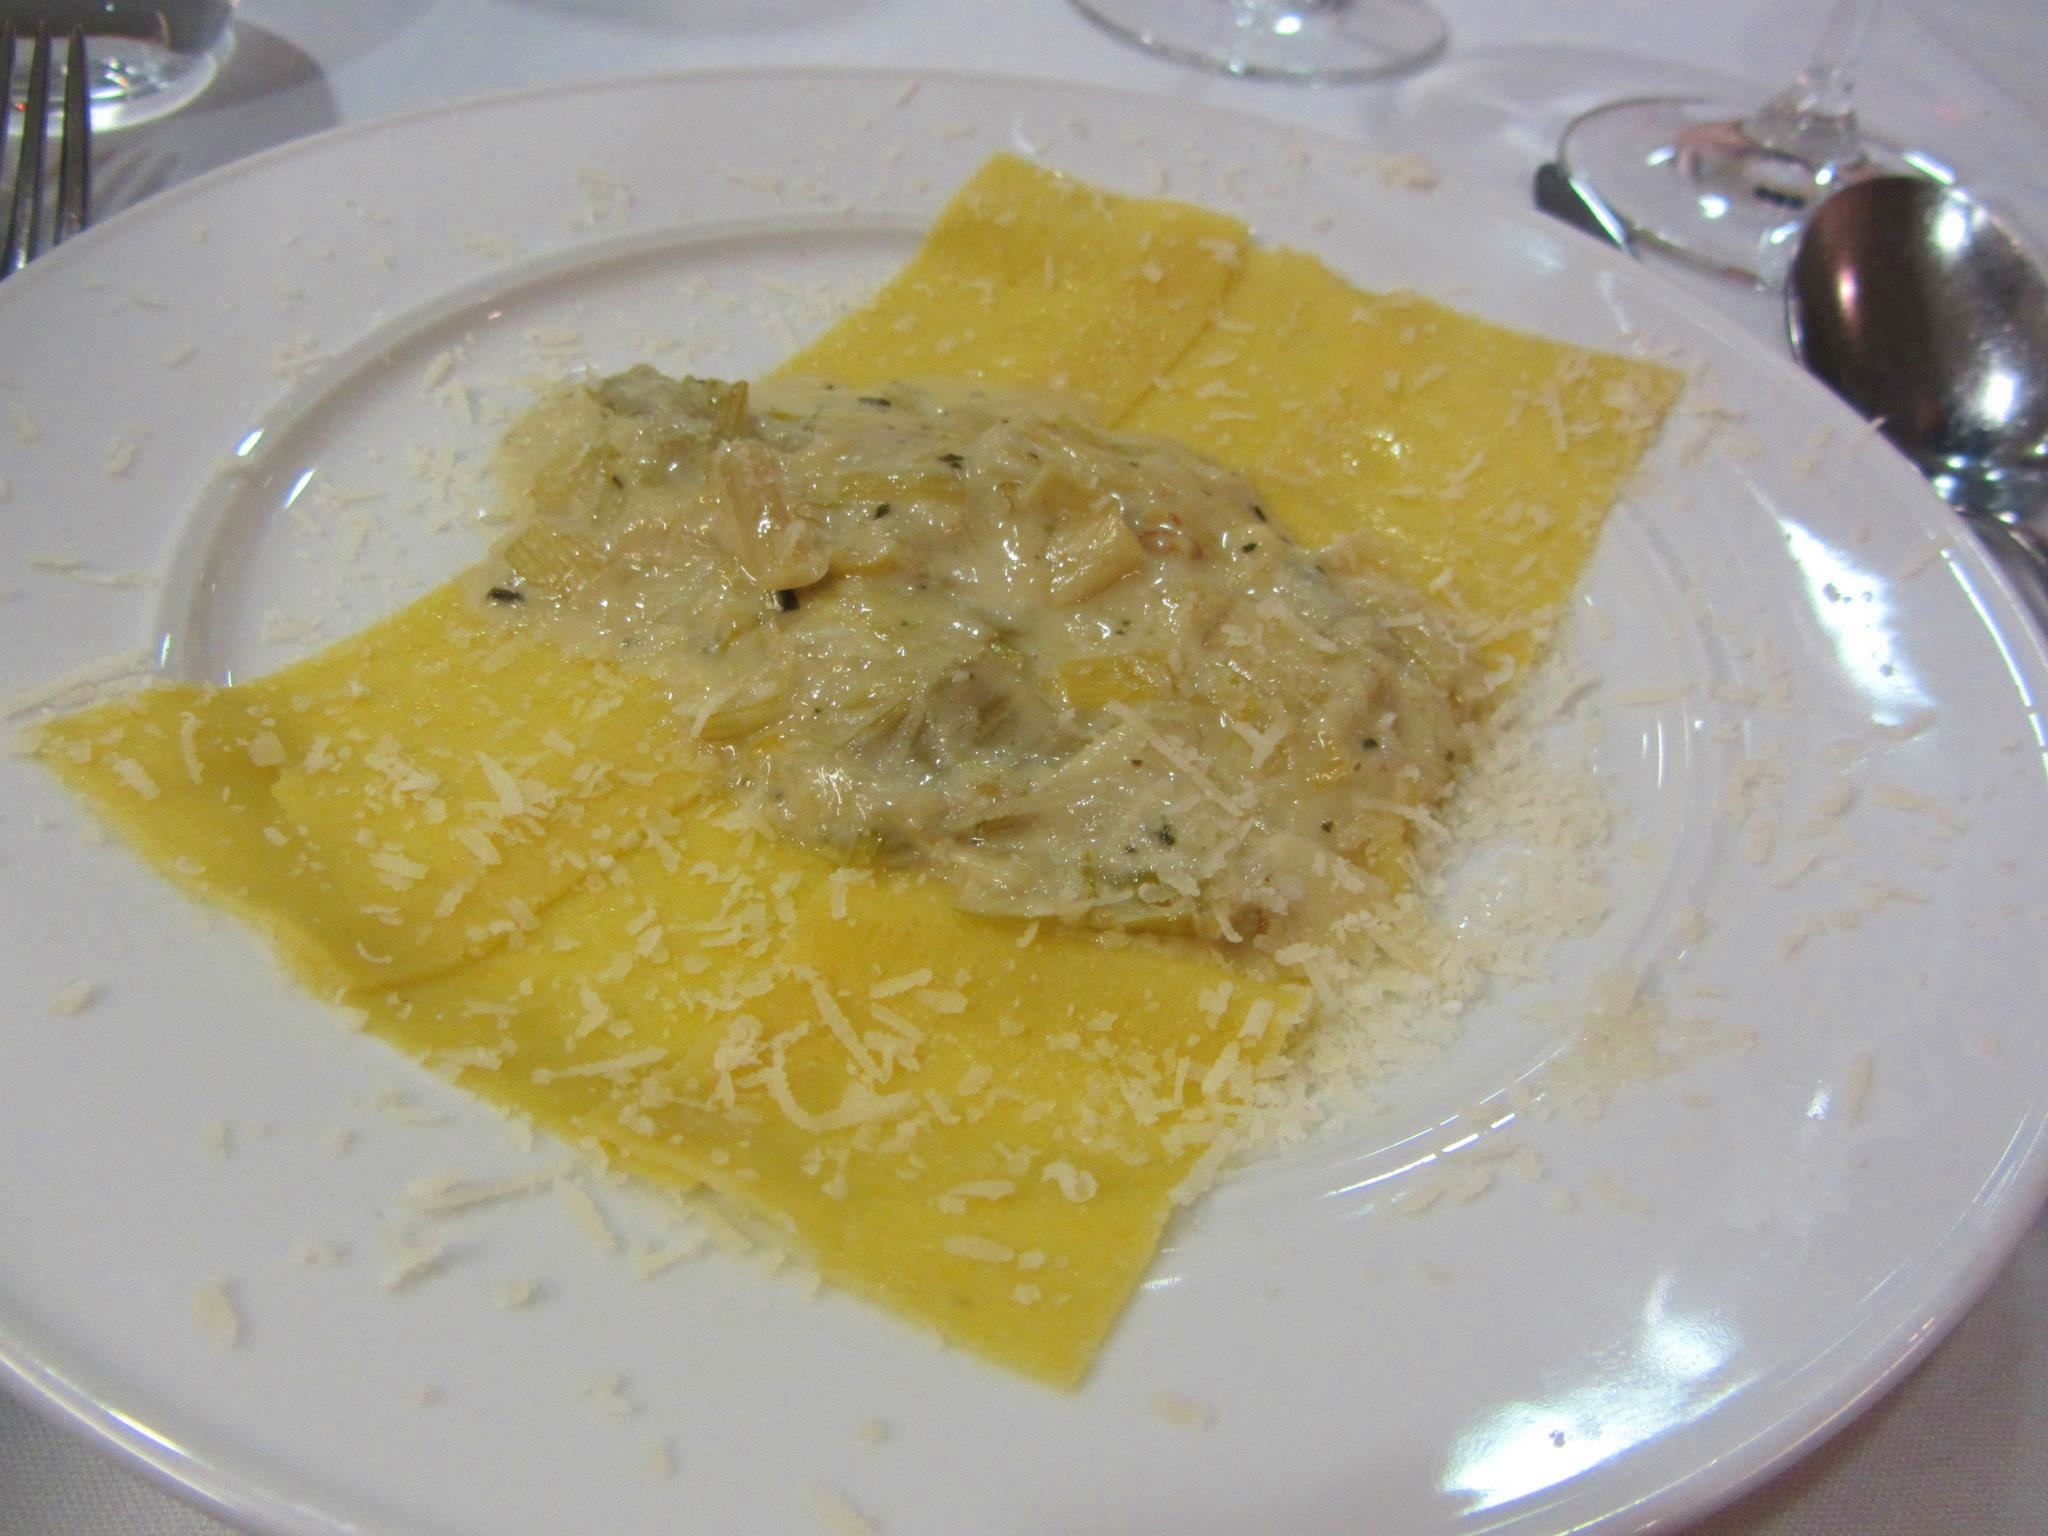 Stradette con Porri with melted leeks and Parmigiano-Reggiano